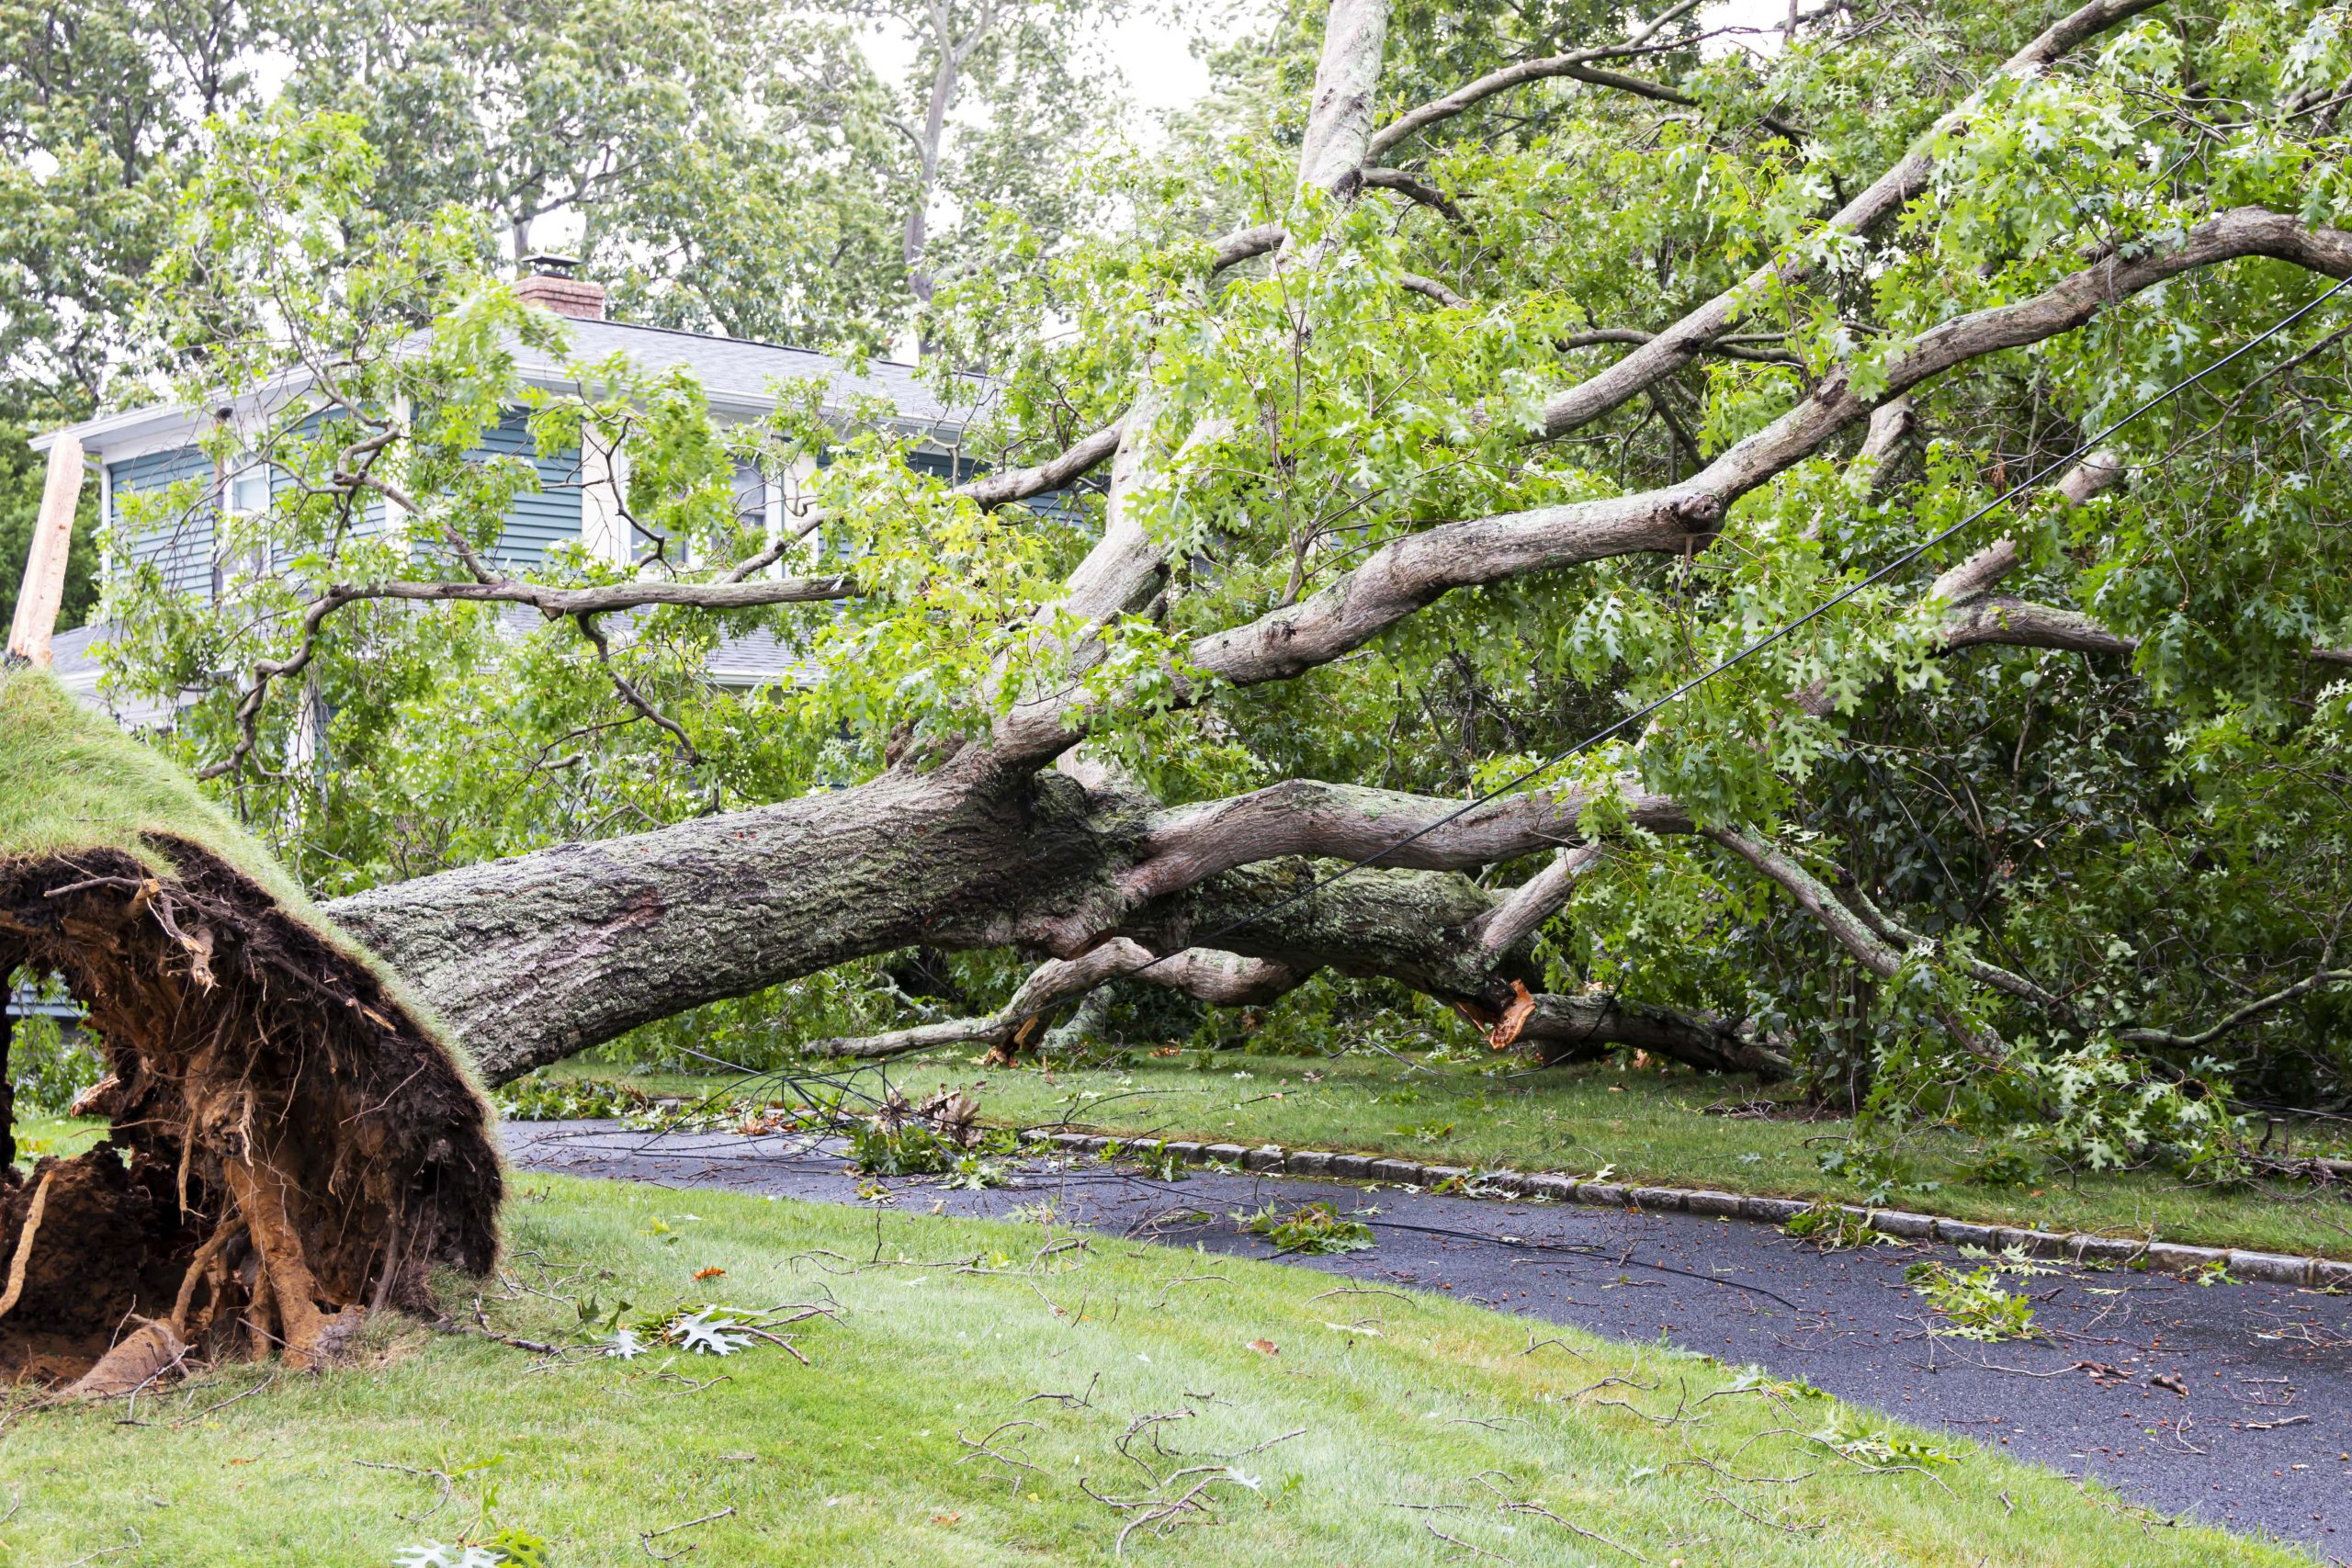 A fallen tree laying on someones driveway